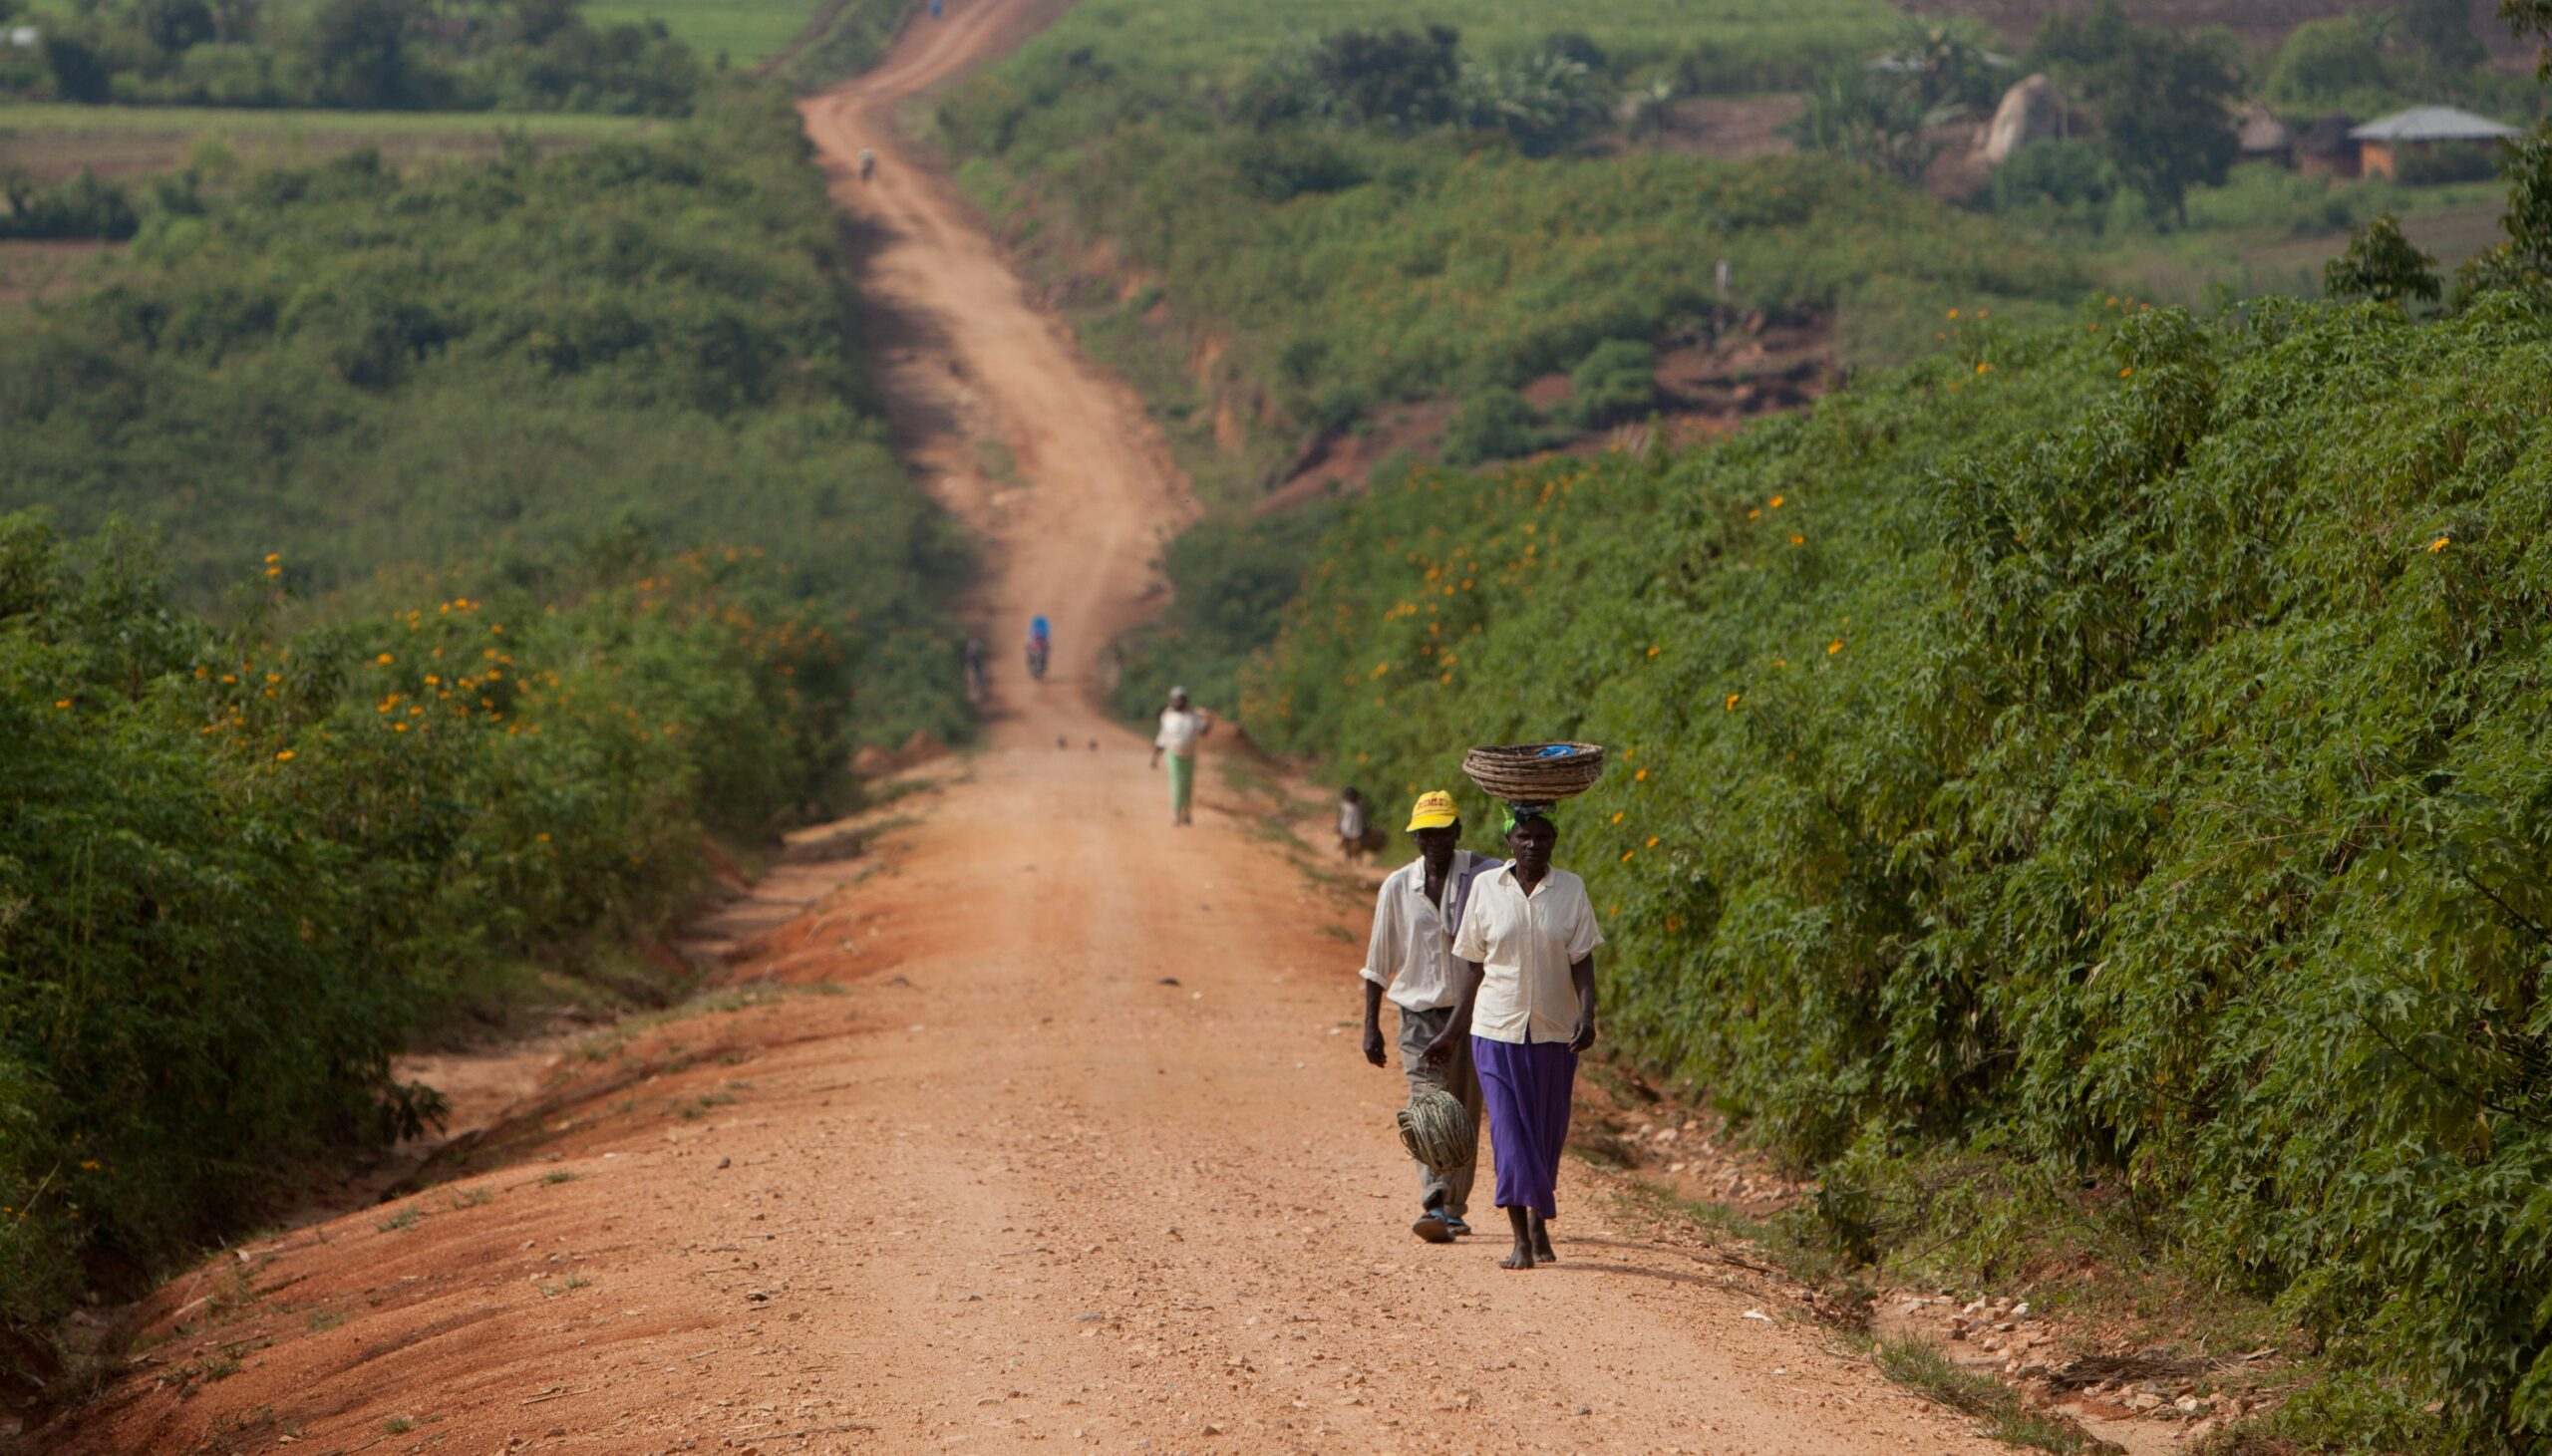 people walking on dirt road with greenery on sides